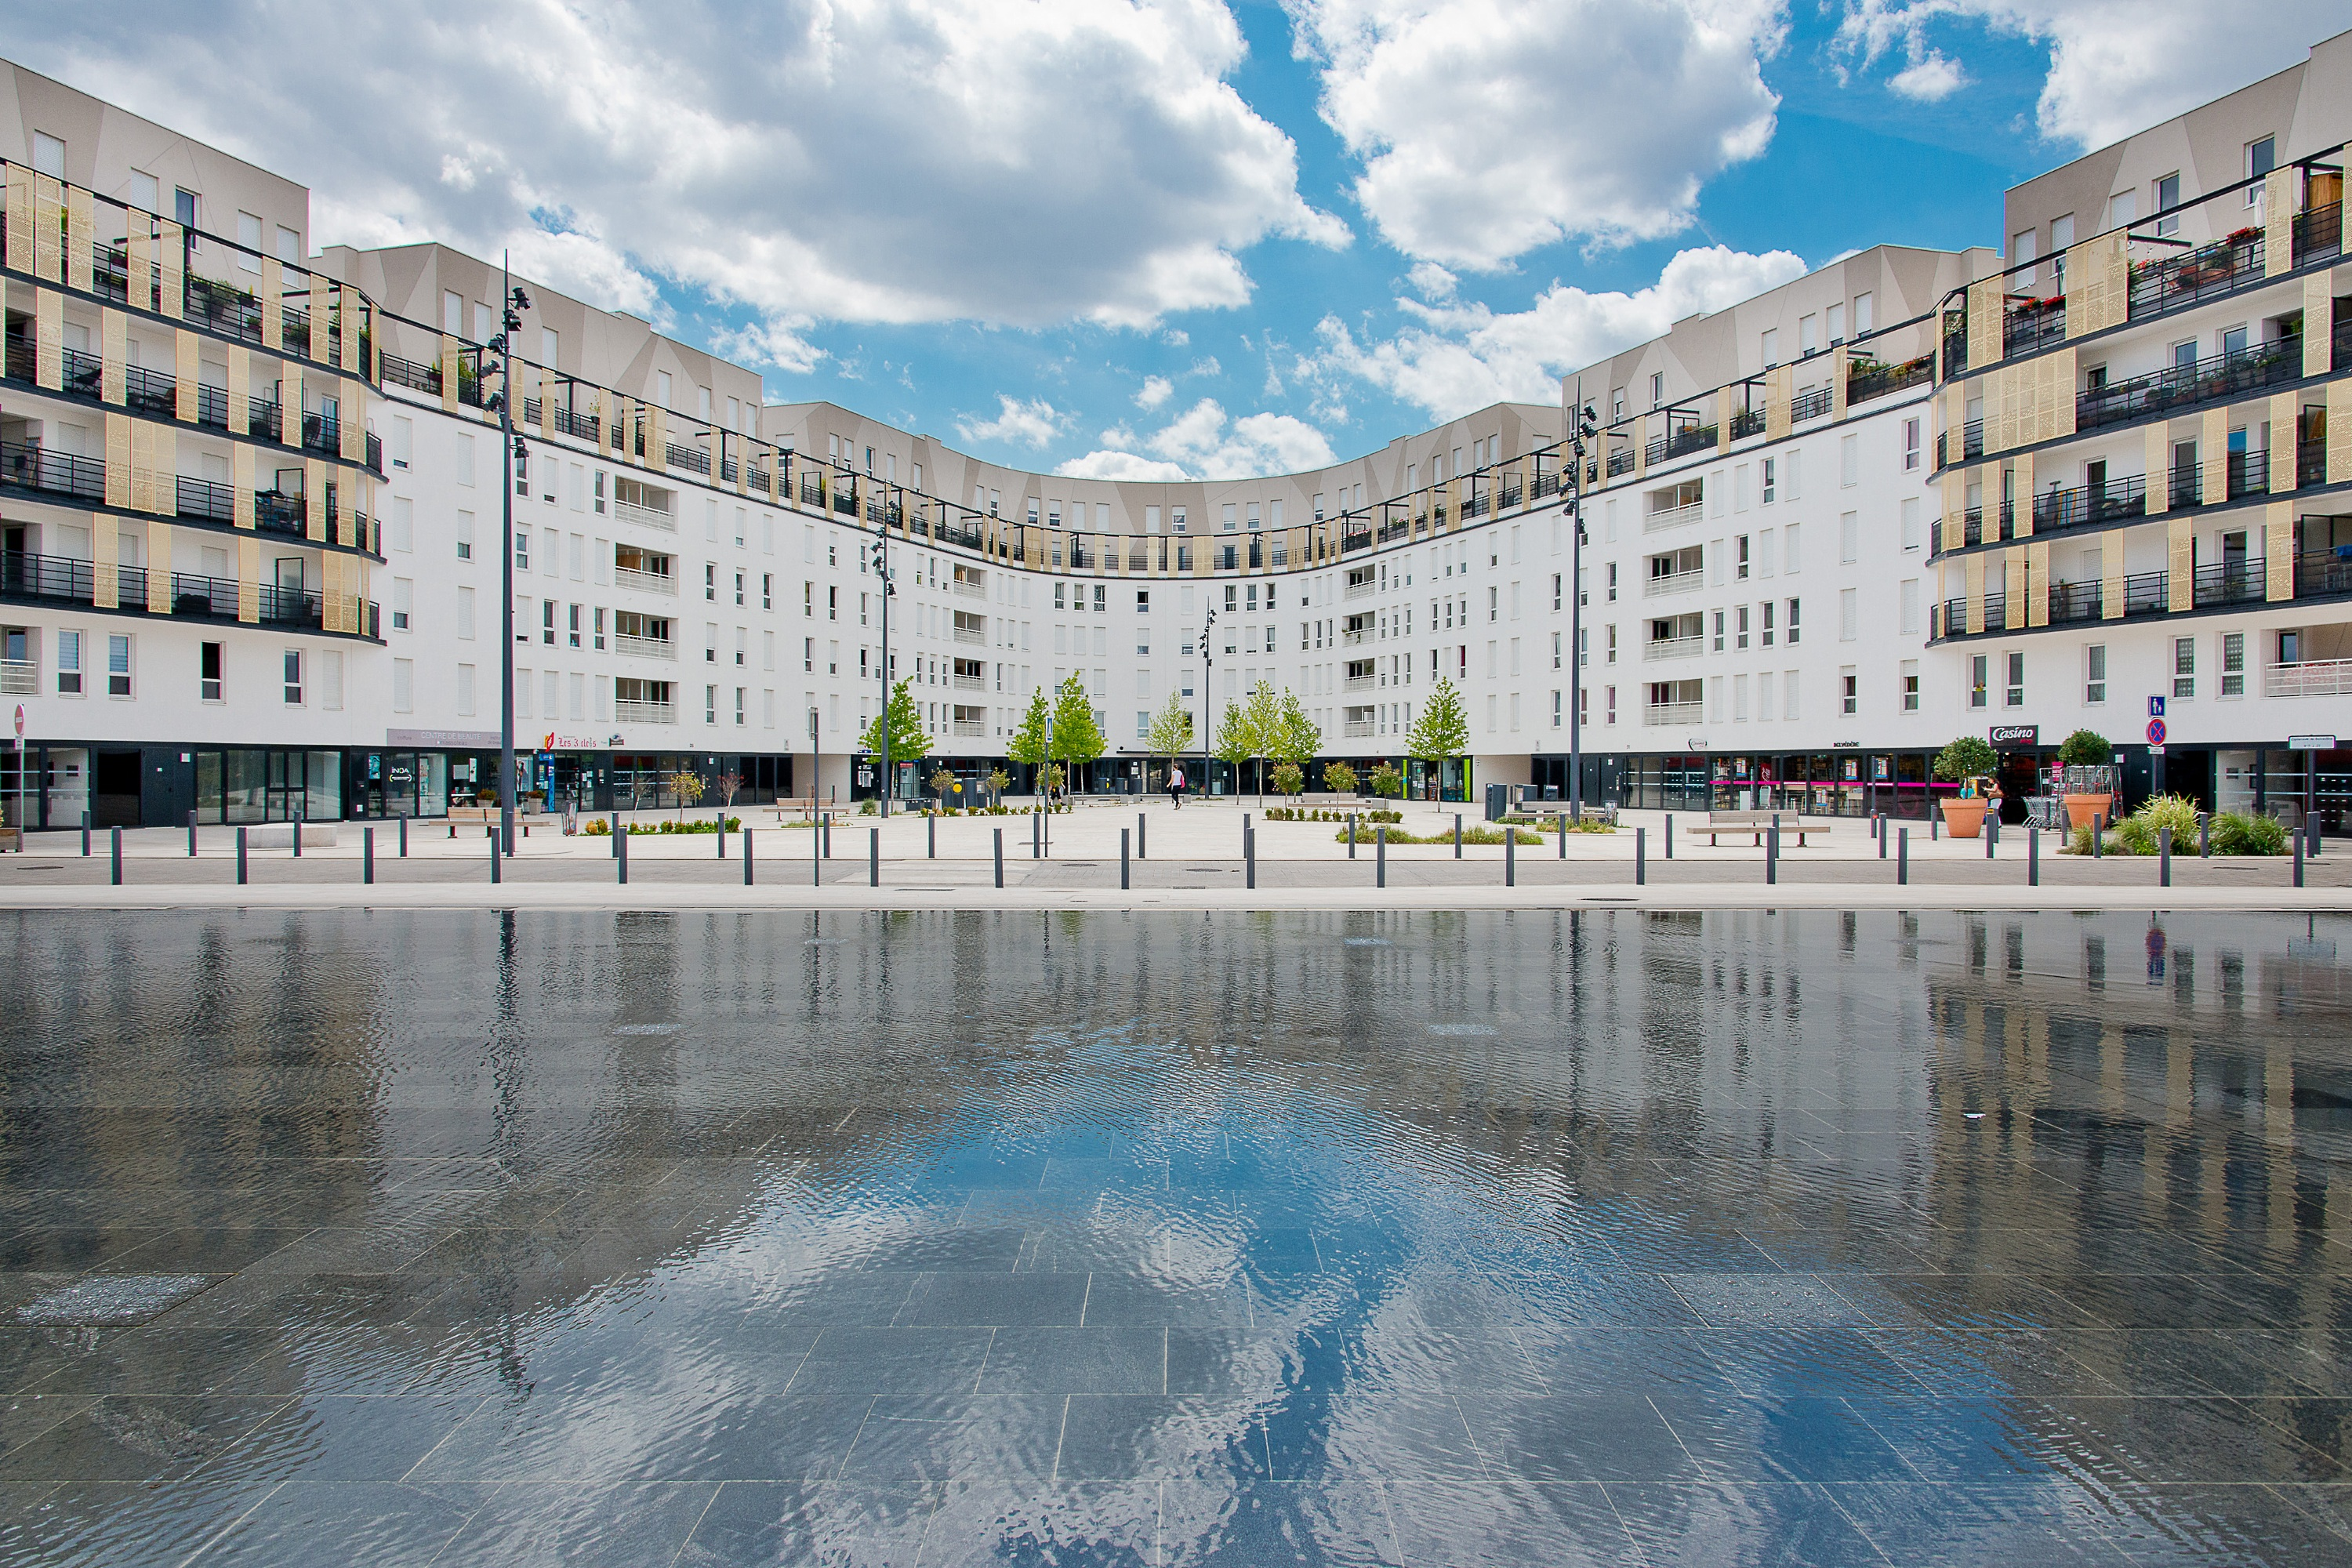 L co quartier du fort d issy a conquis ses r sidents for Piscine issy les moulineaux